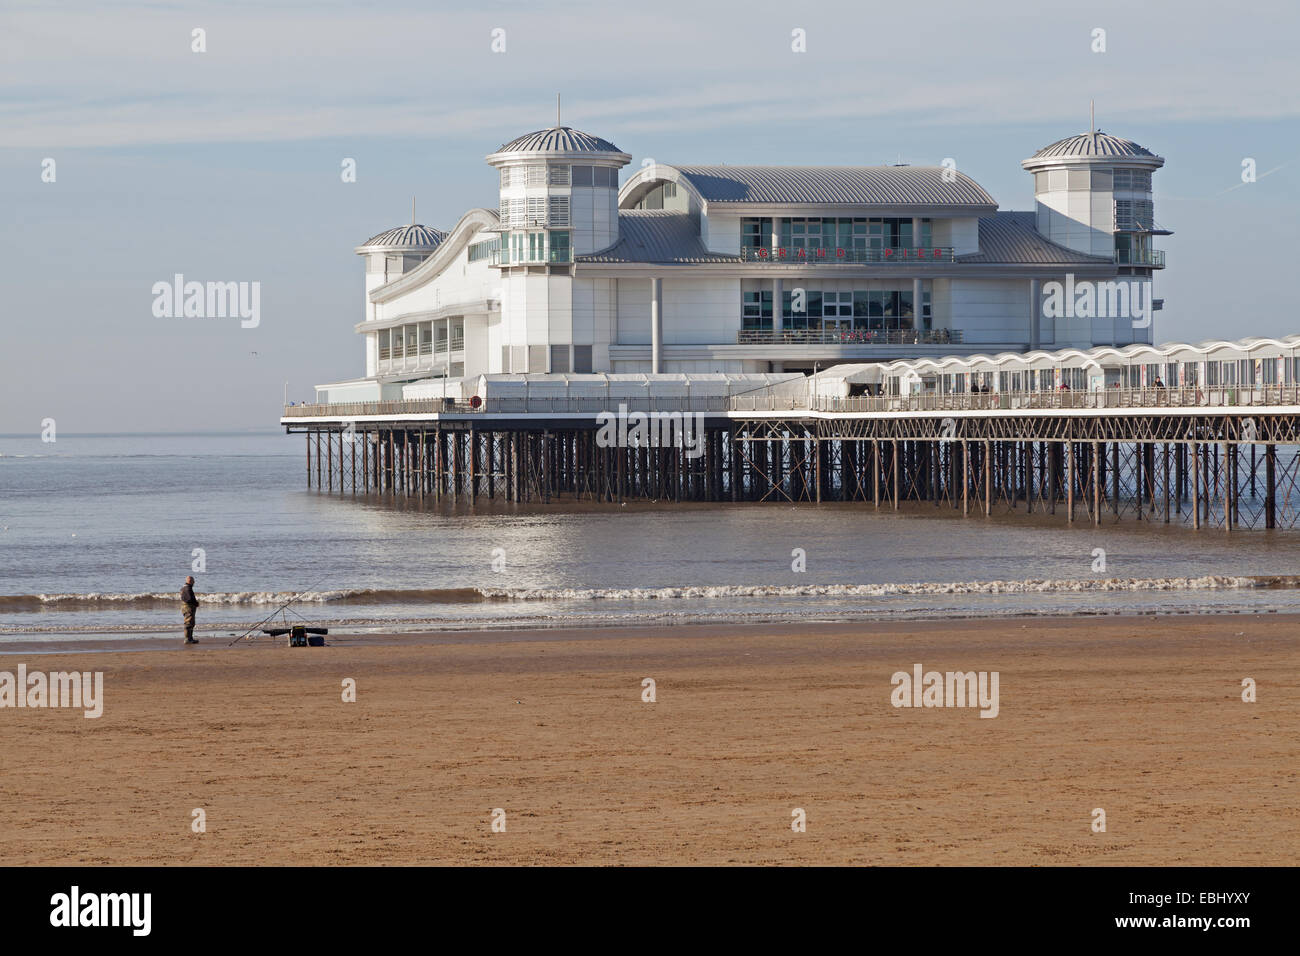 The Grand Pier, Weston-super-Mare, Somerset, England with an angler in the foreground. Stock Photo